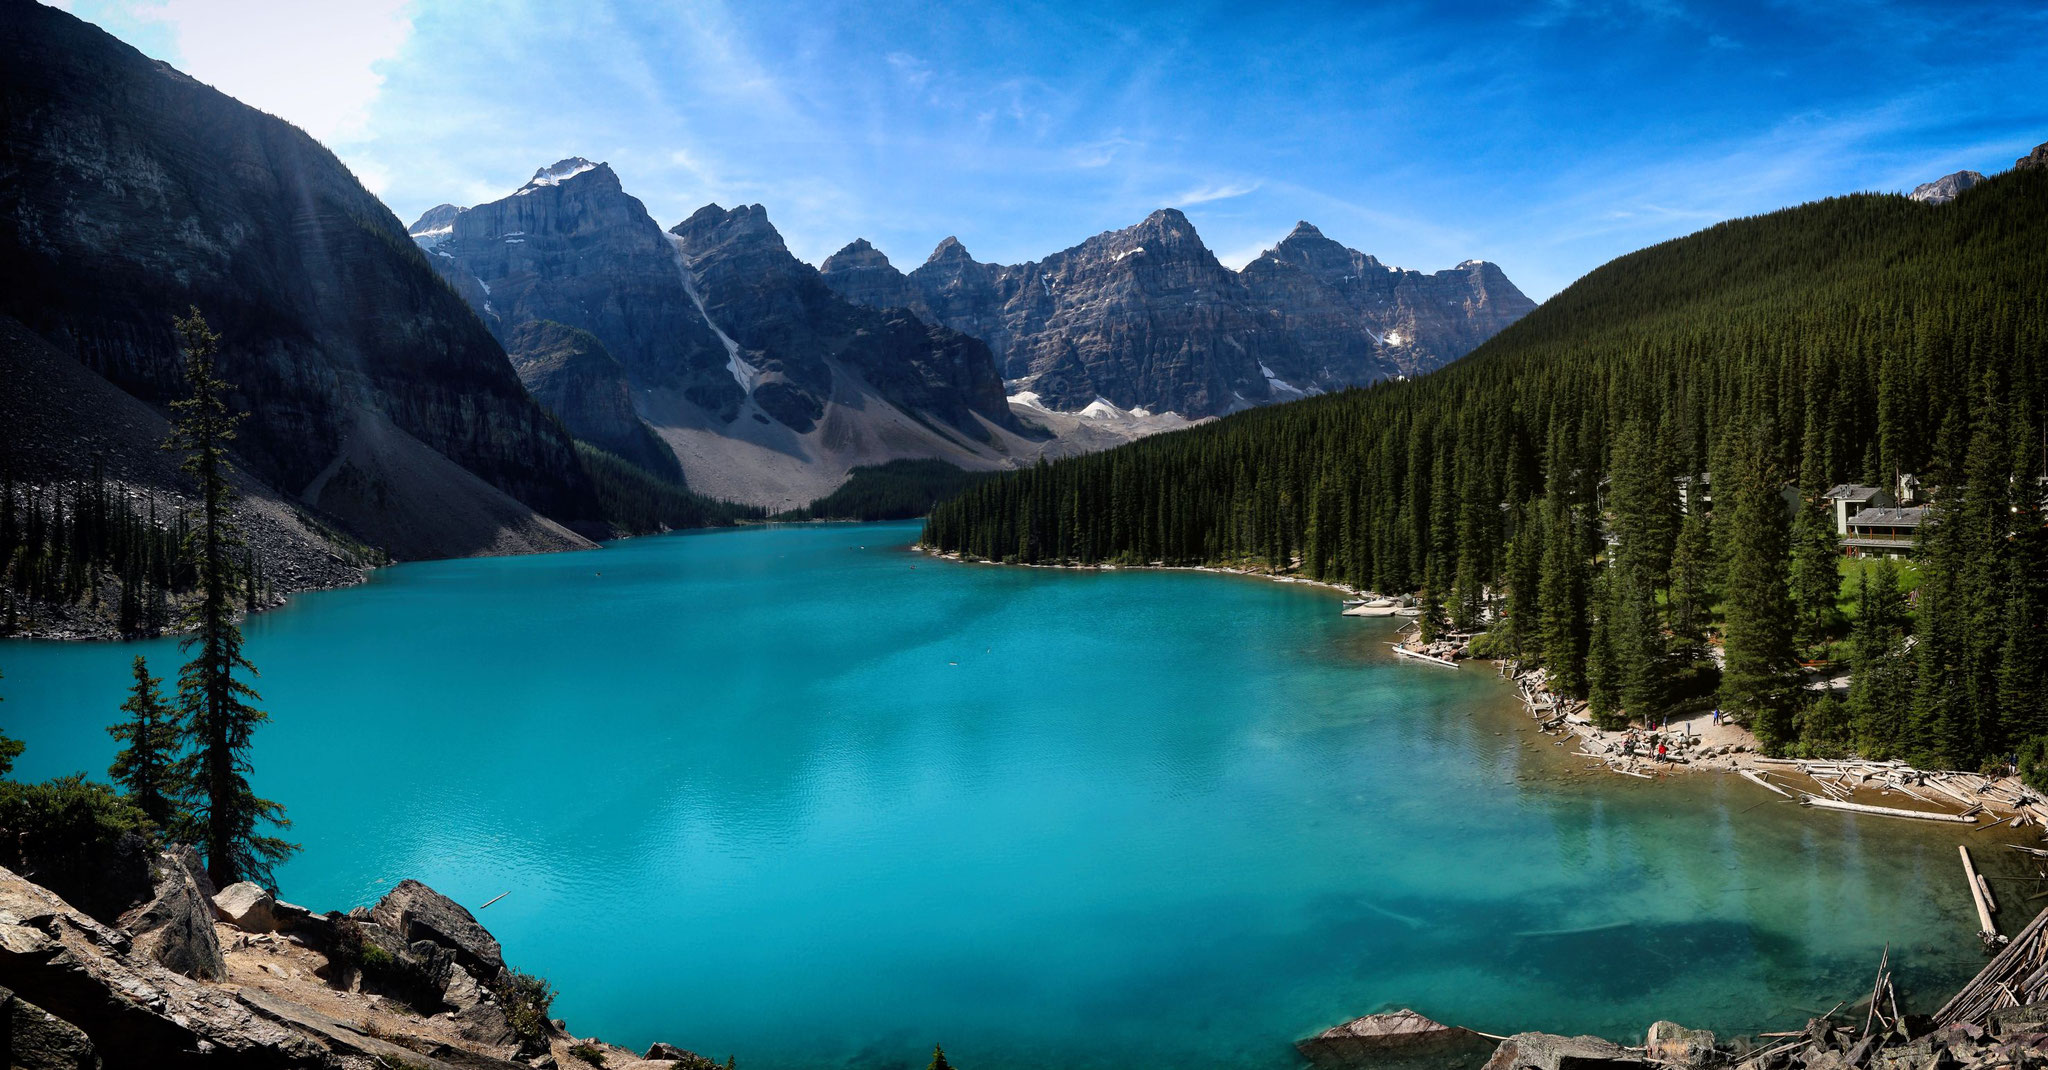 Moraine Lake - mittags